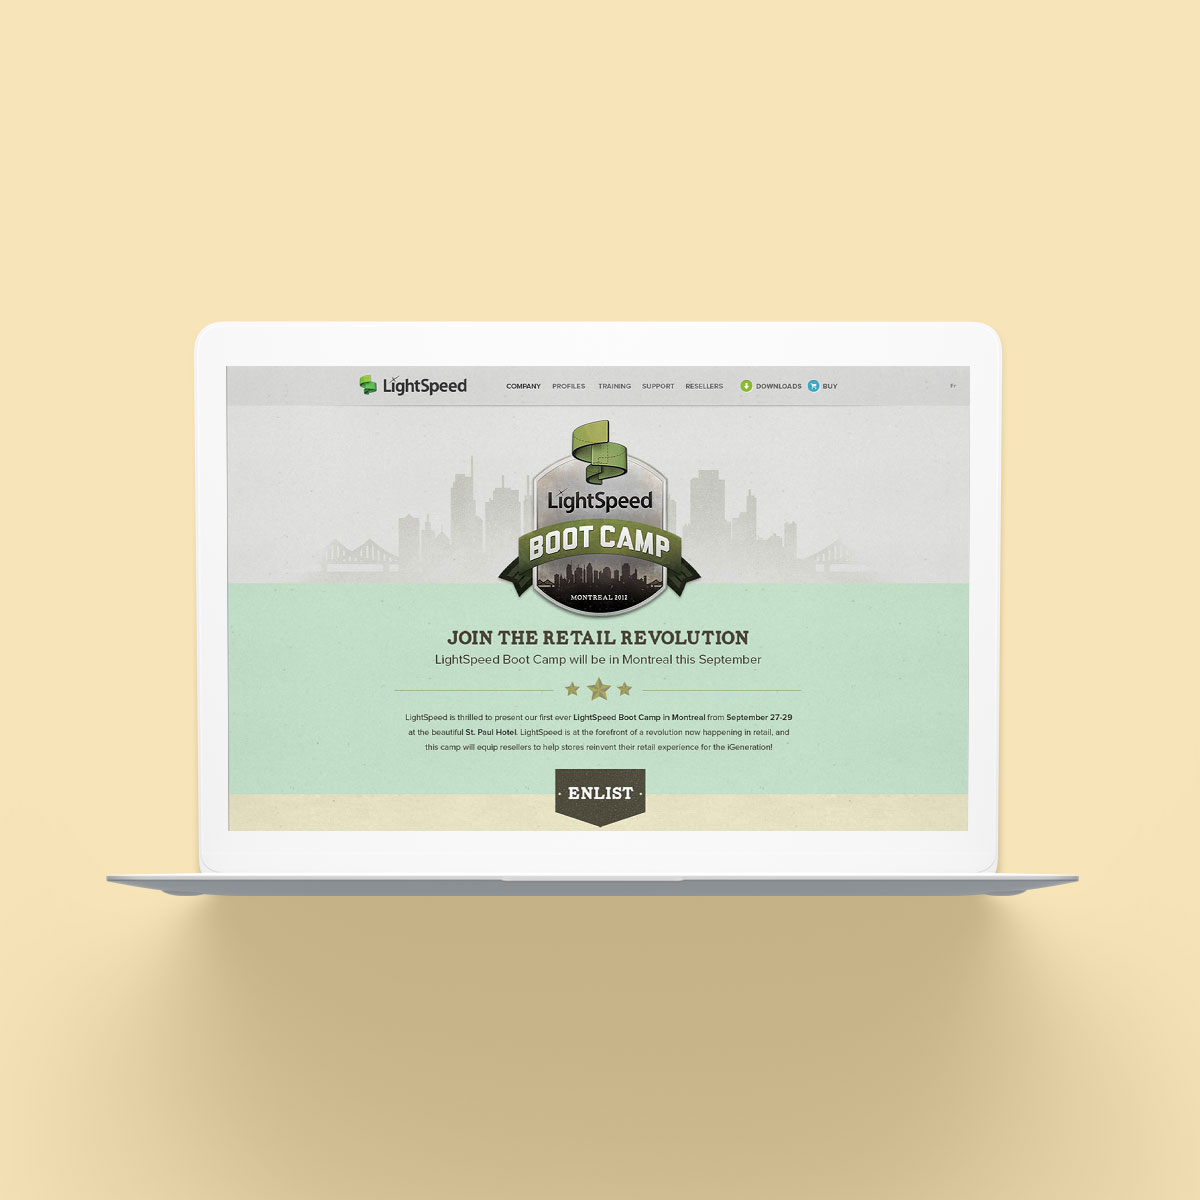 Lightspeed Boot Camp Website Design